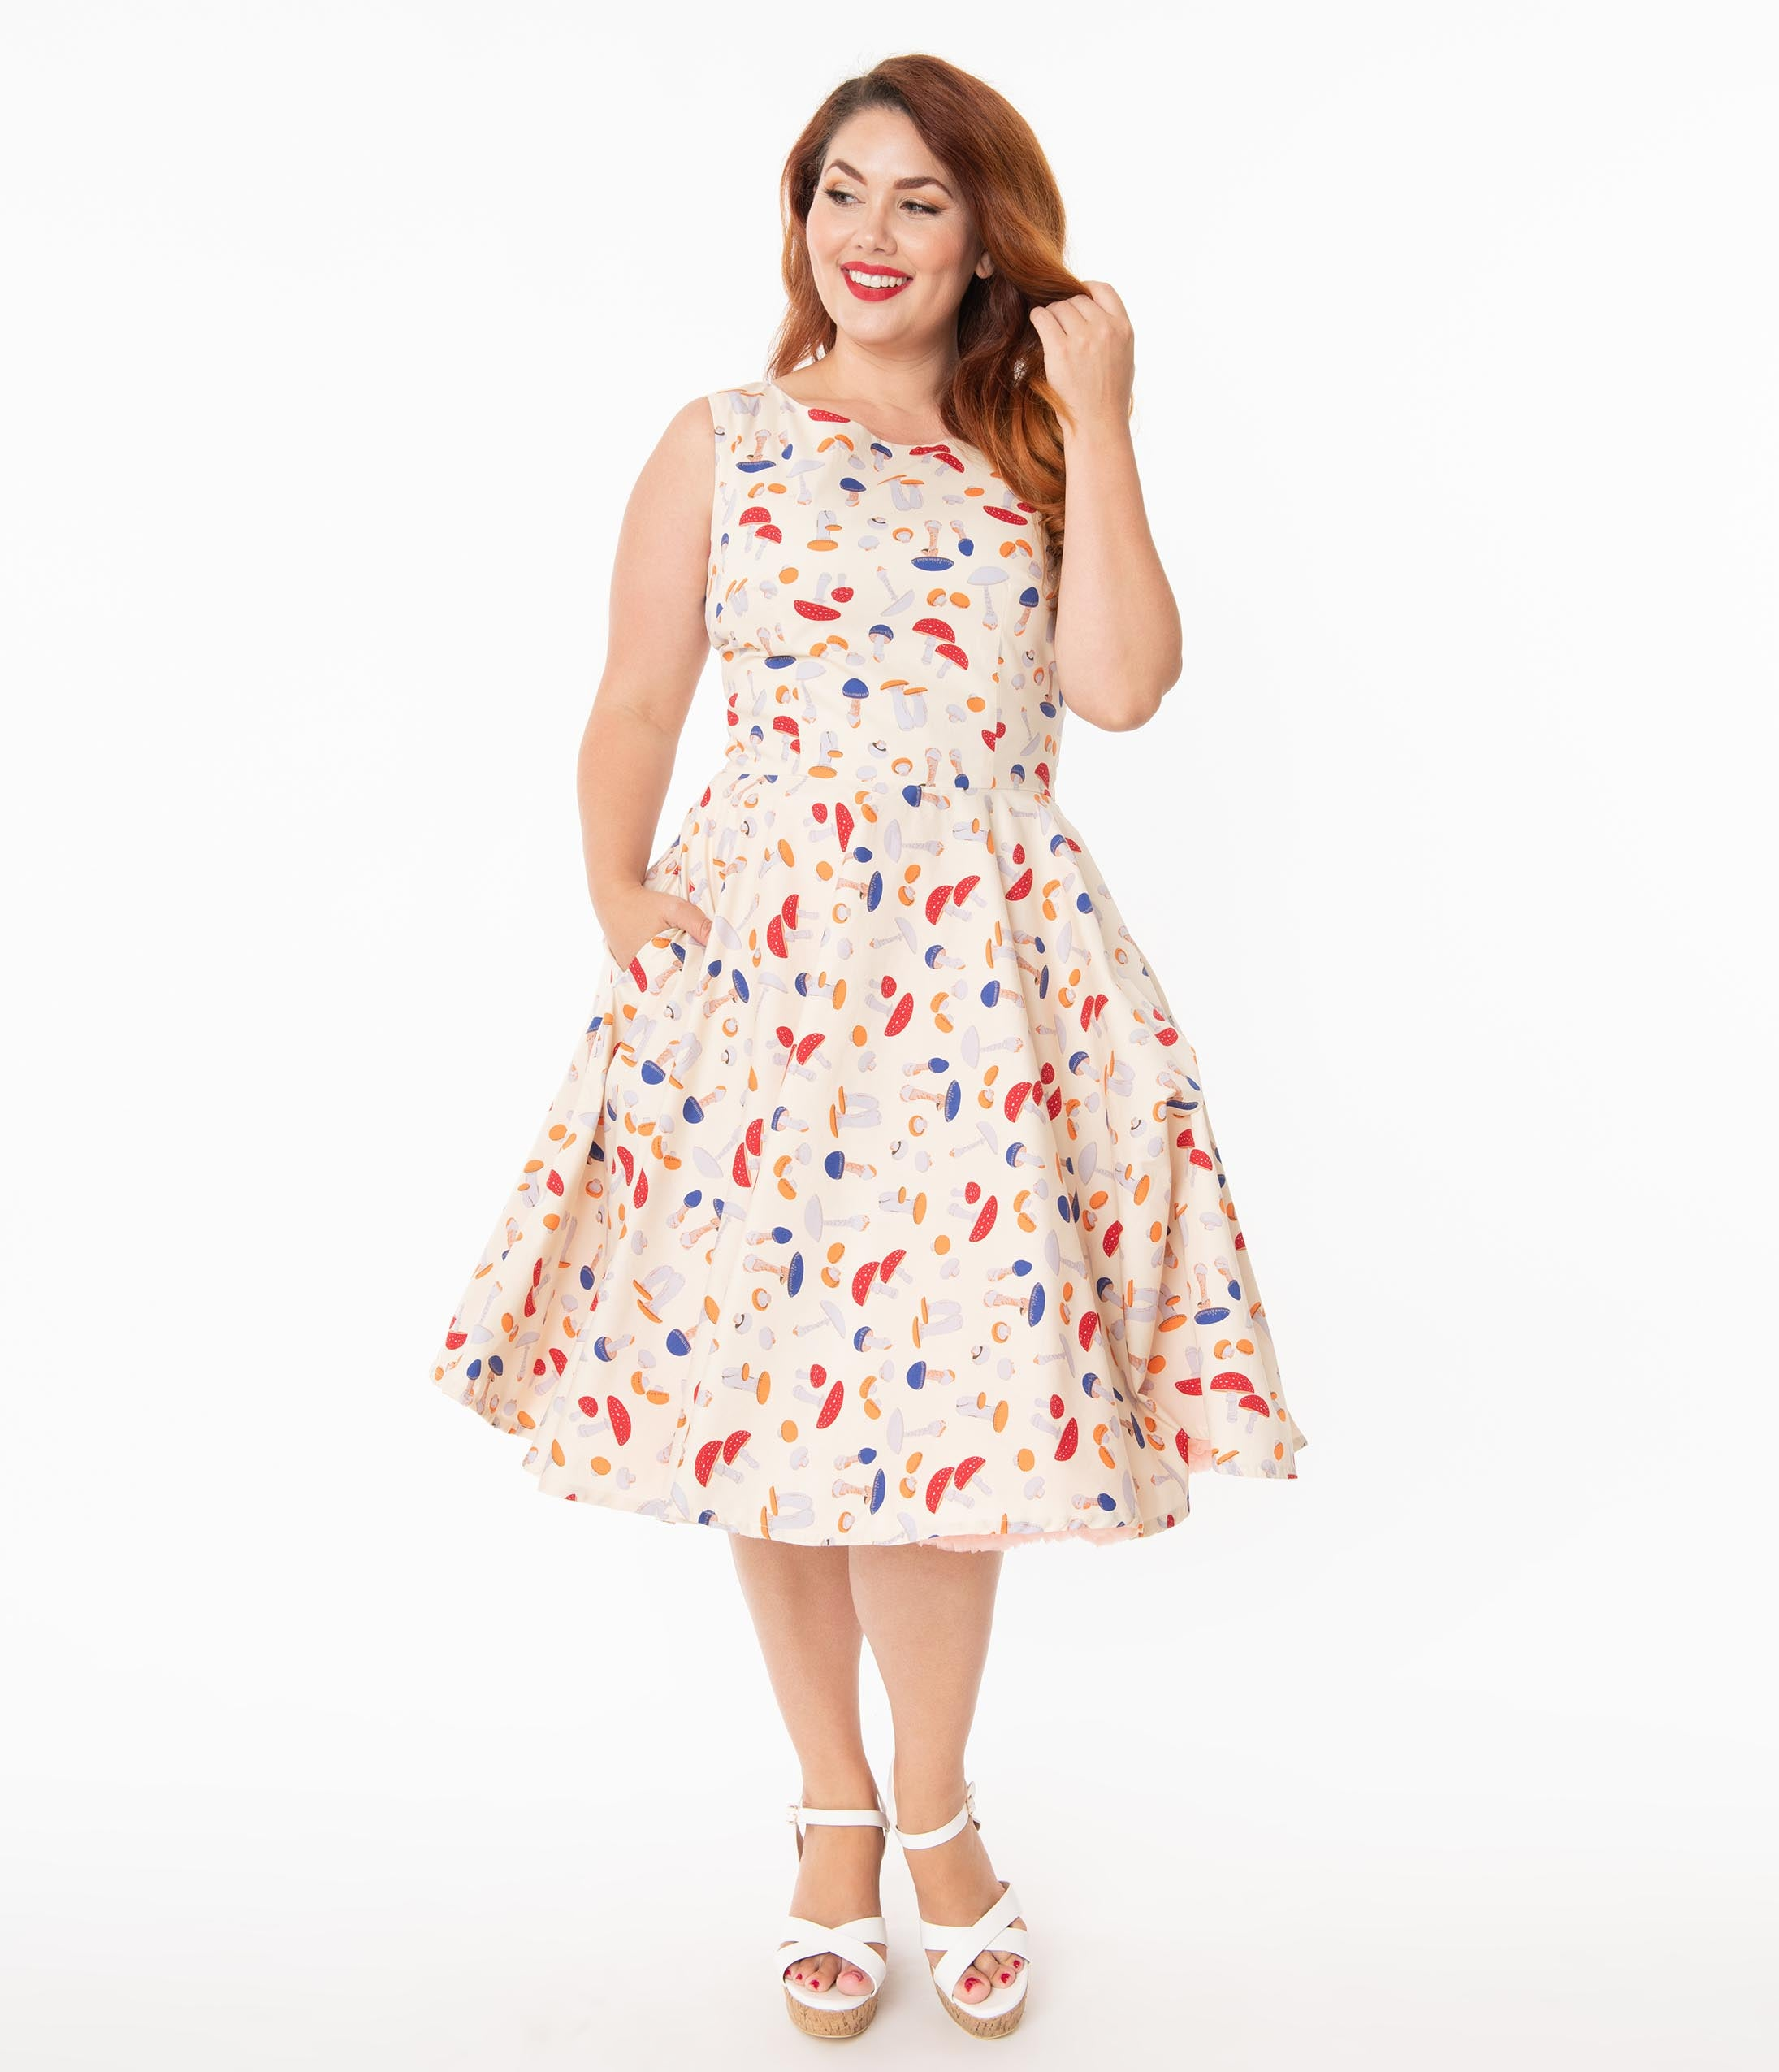 1950s Plus Size Dresses, Swing Dresses Plus Size Retro Style Cream  Mushroom Print Candice Swing Dress $78.00 AT vintagedancer.com